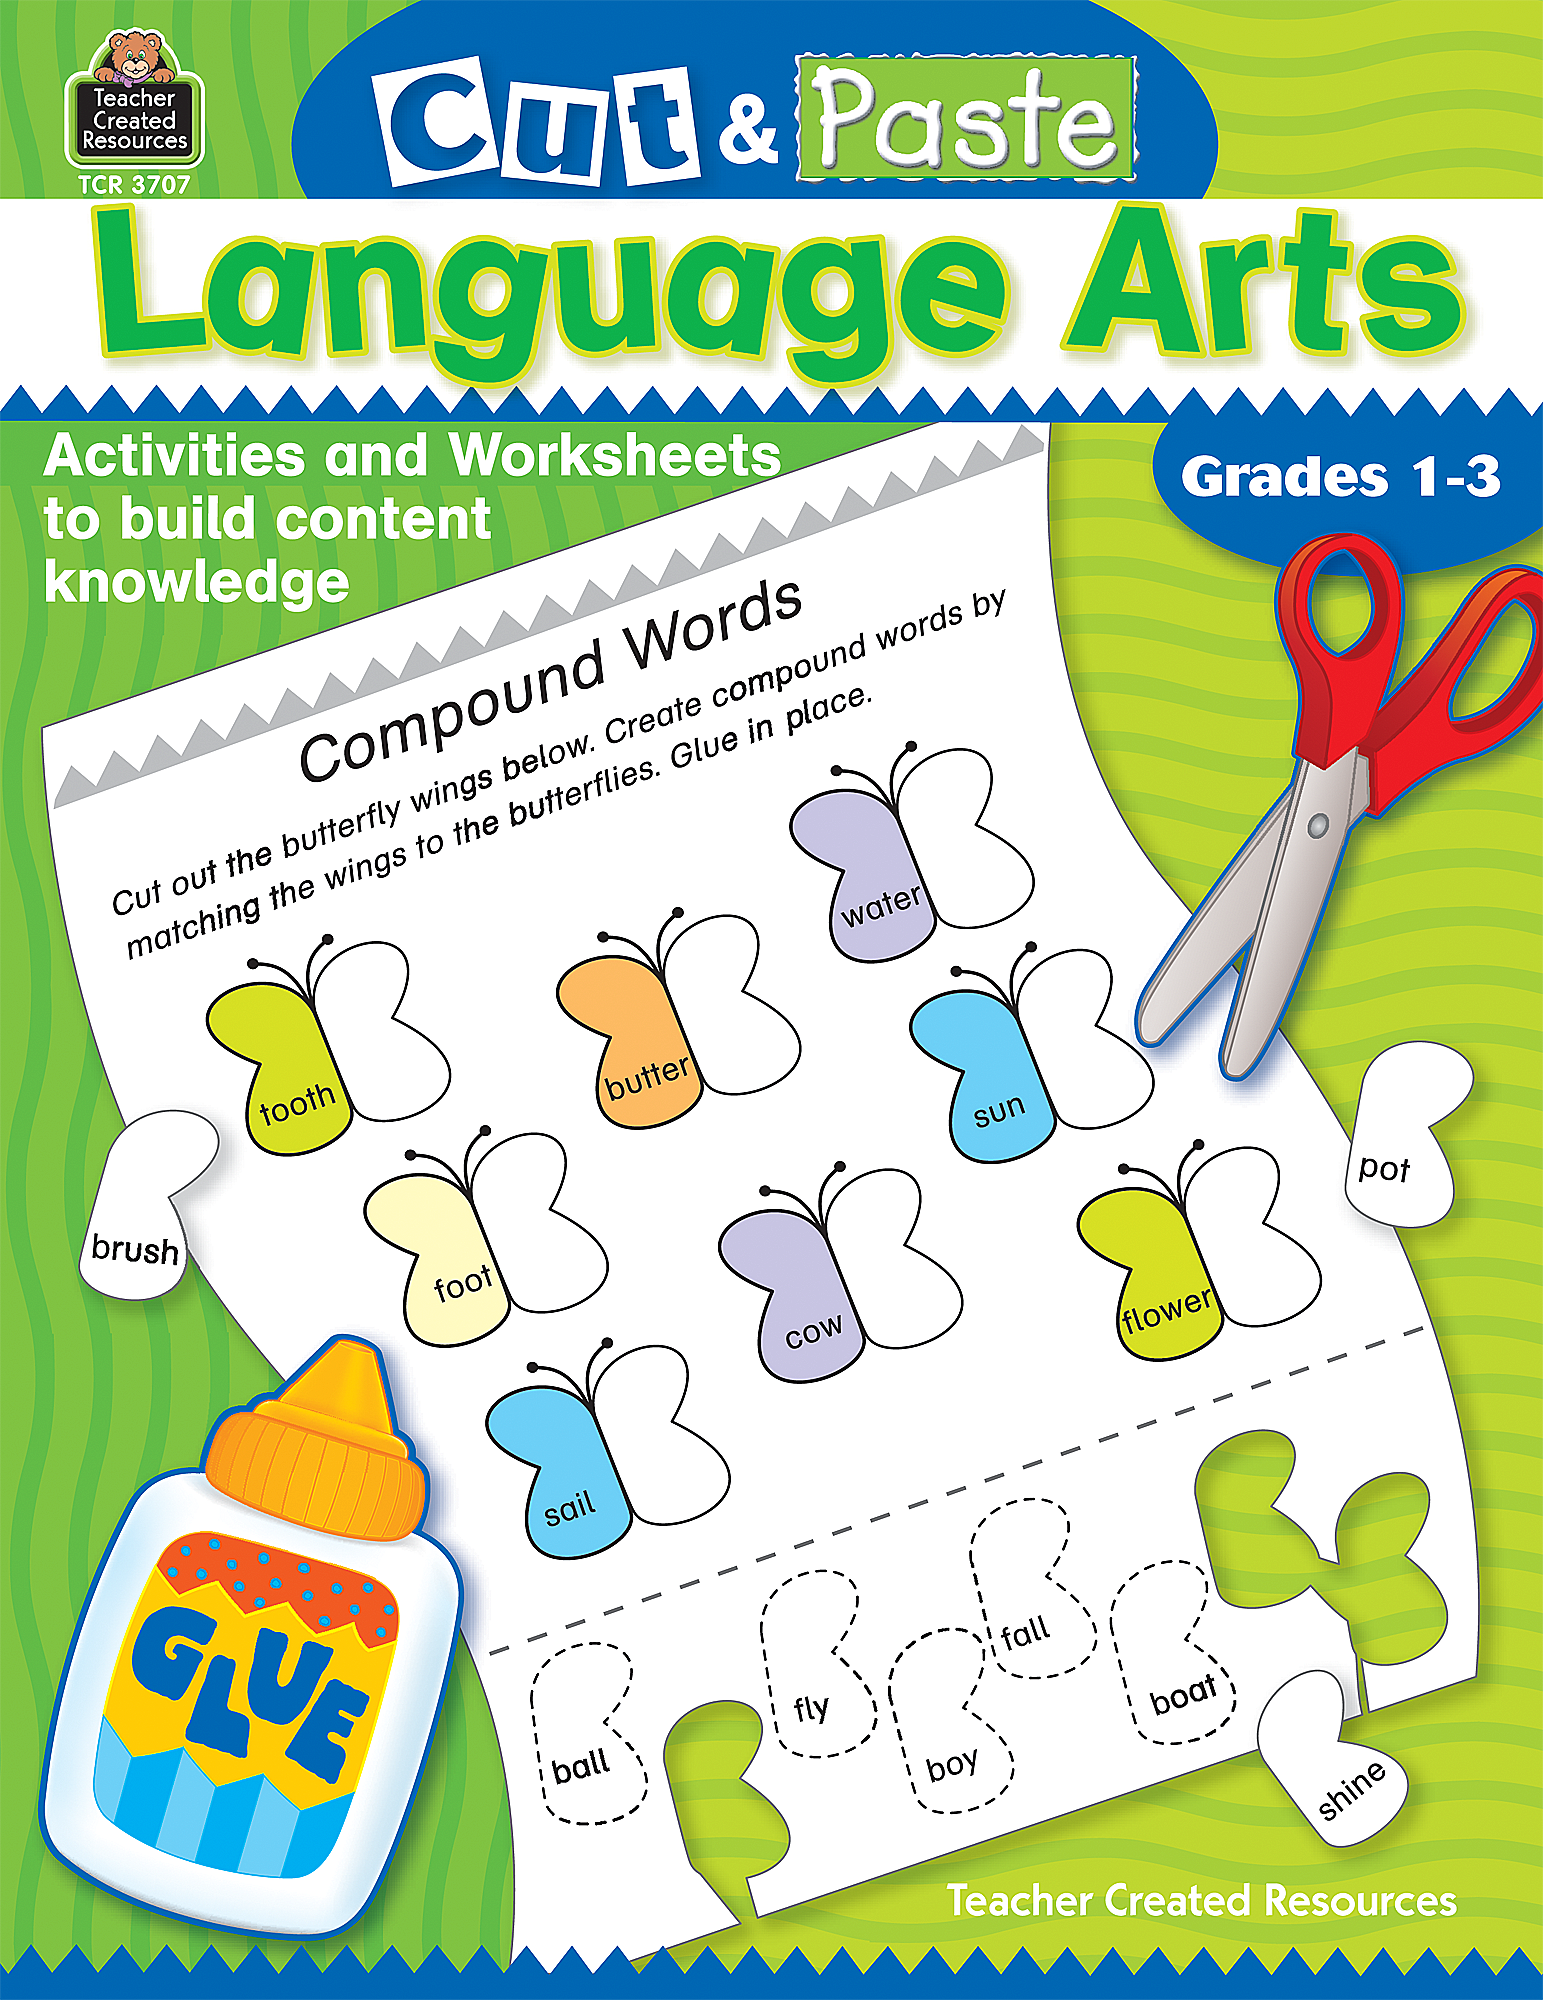 Cut and Paste Language Arts TCR3707 – Teacher Created Resources Worksheets